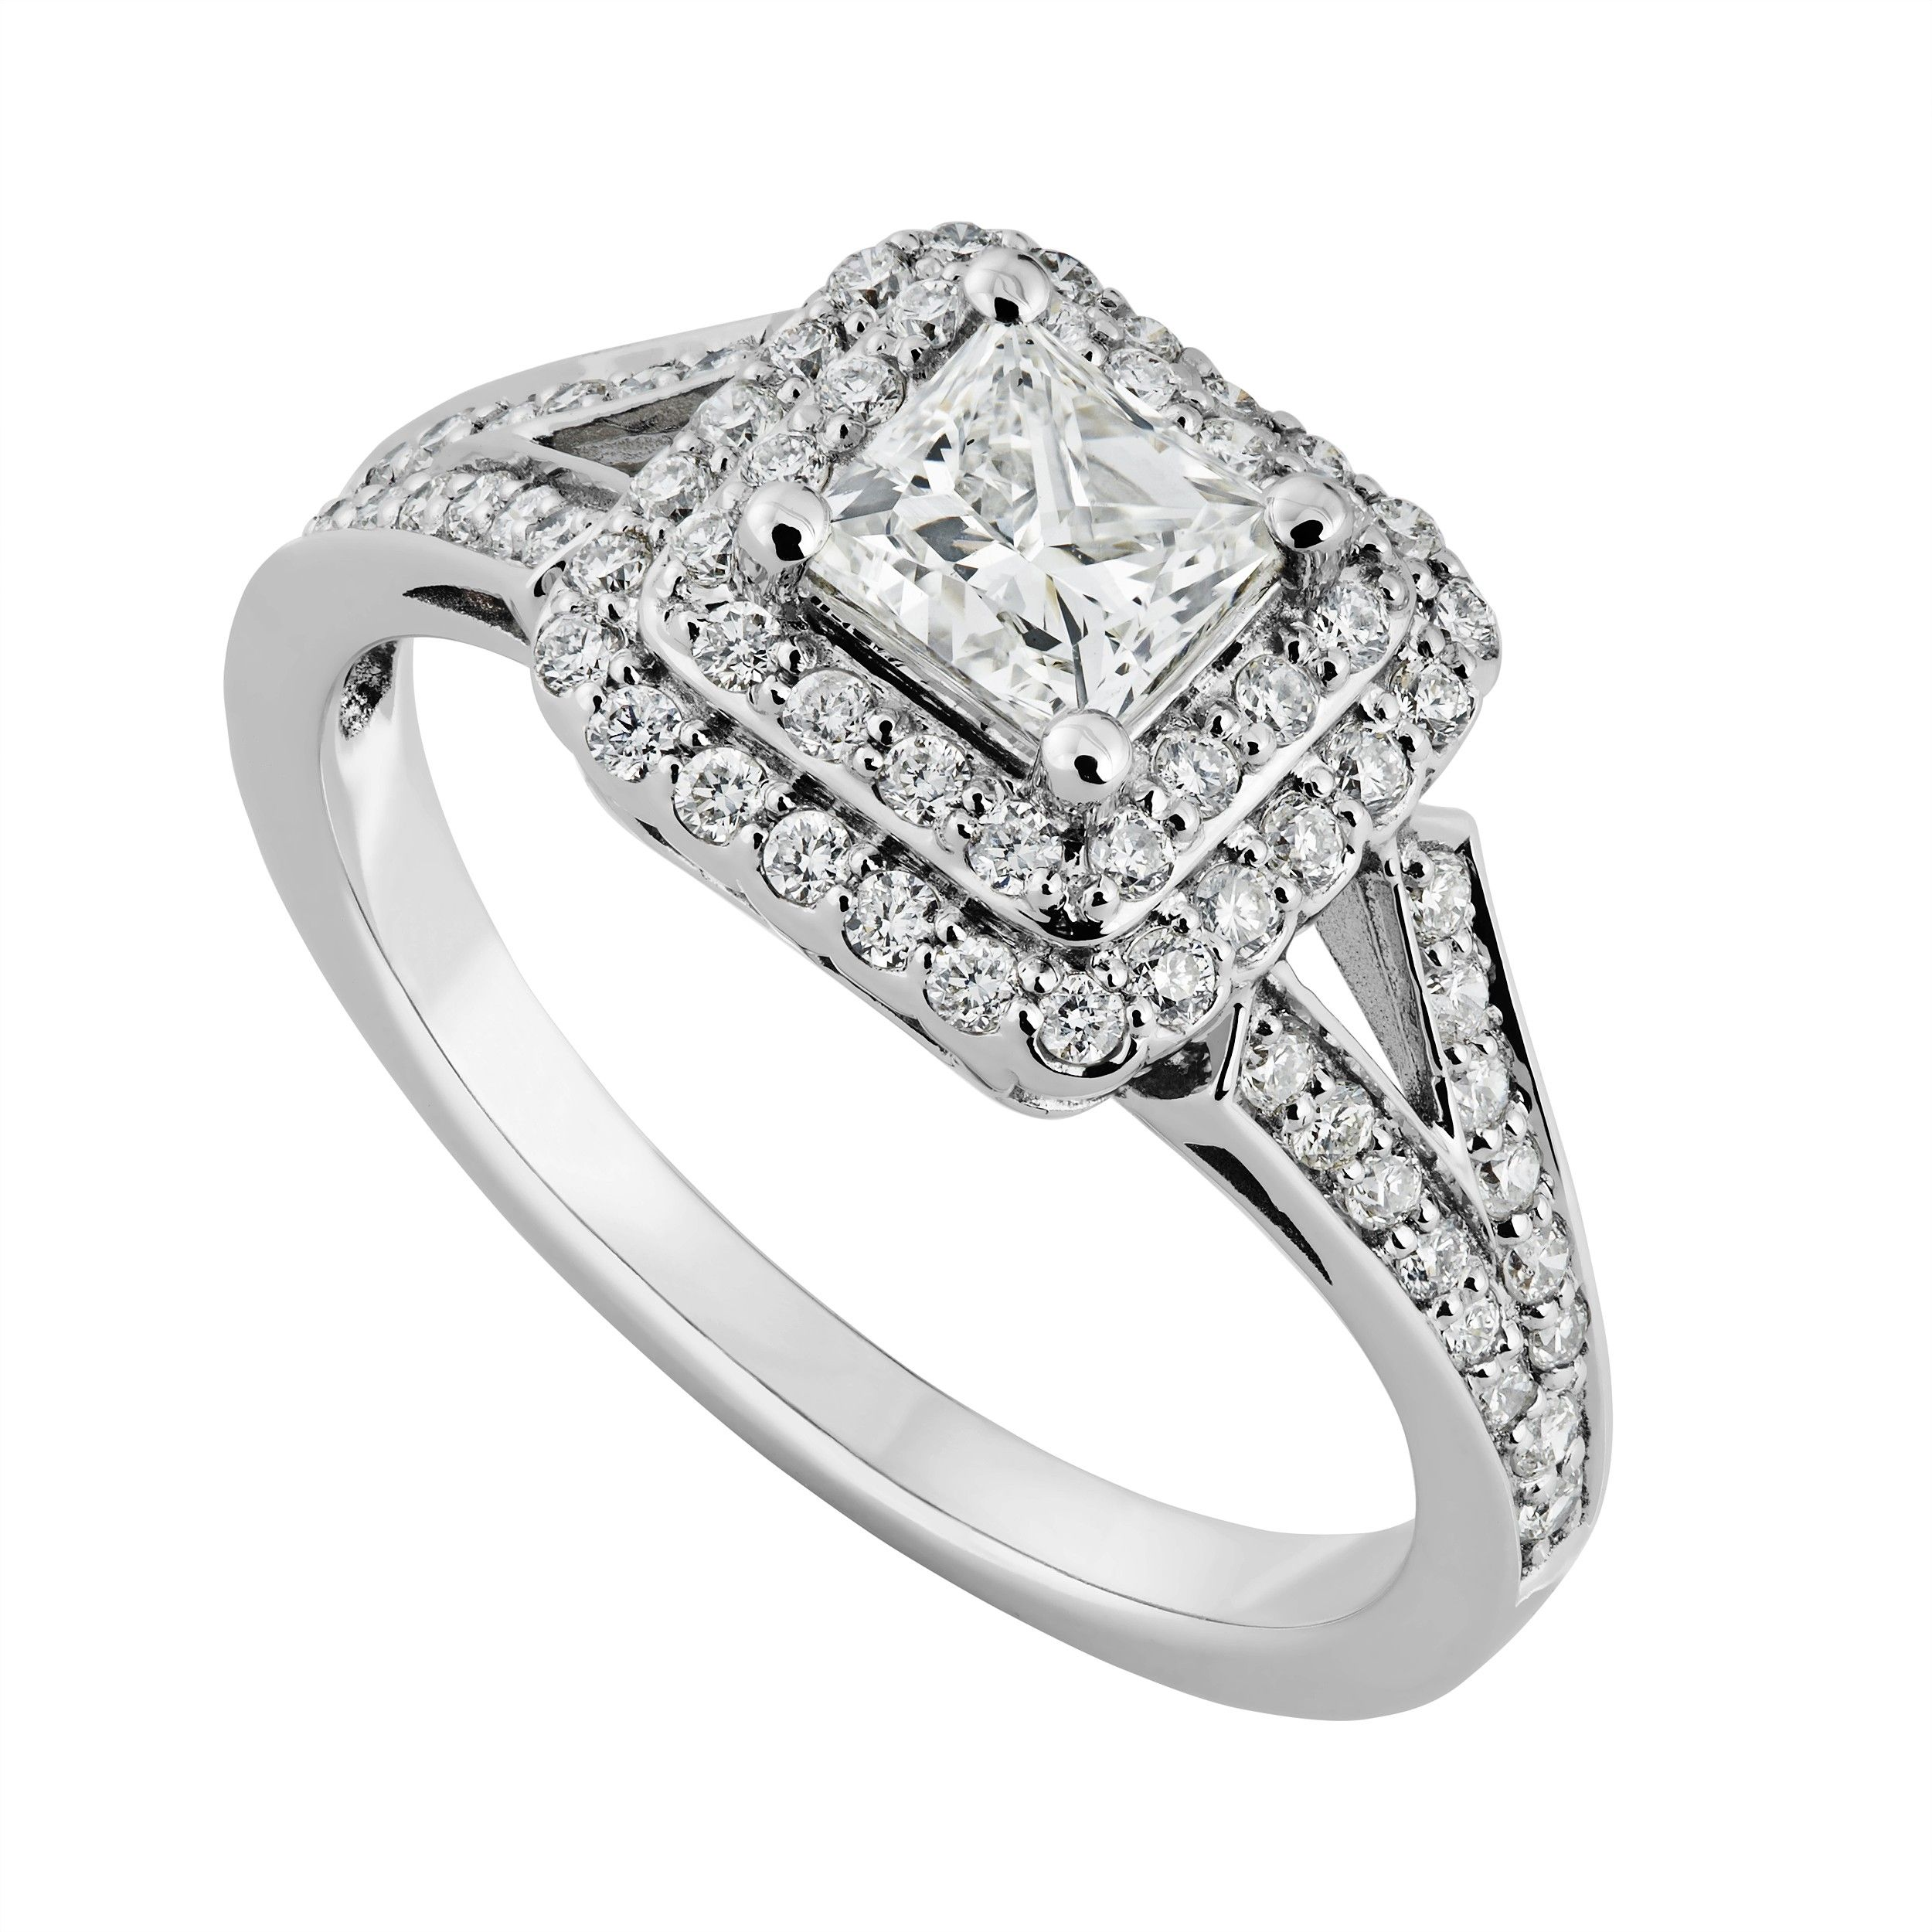 18ct White Gold 085 Carat Princess Cut Diamond Ring